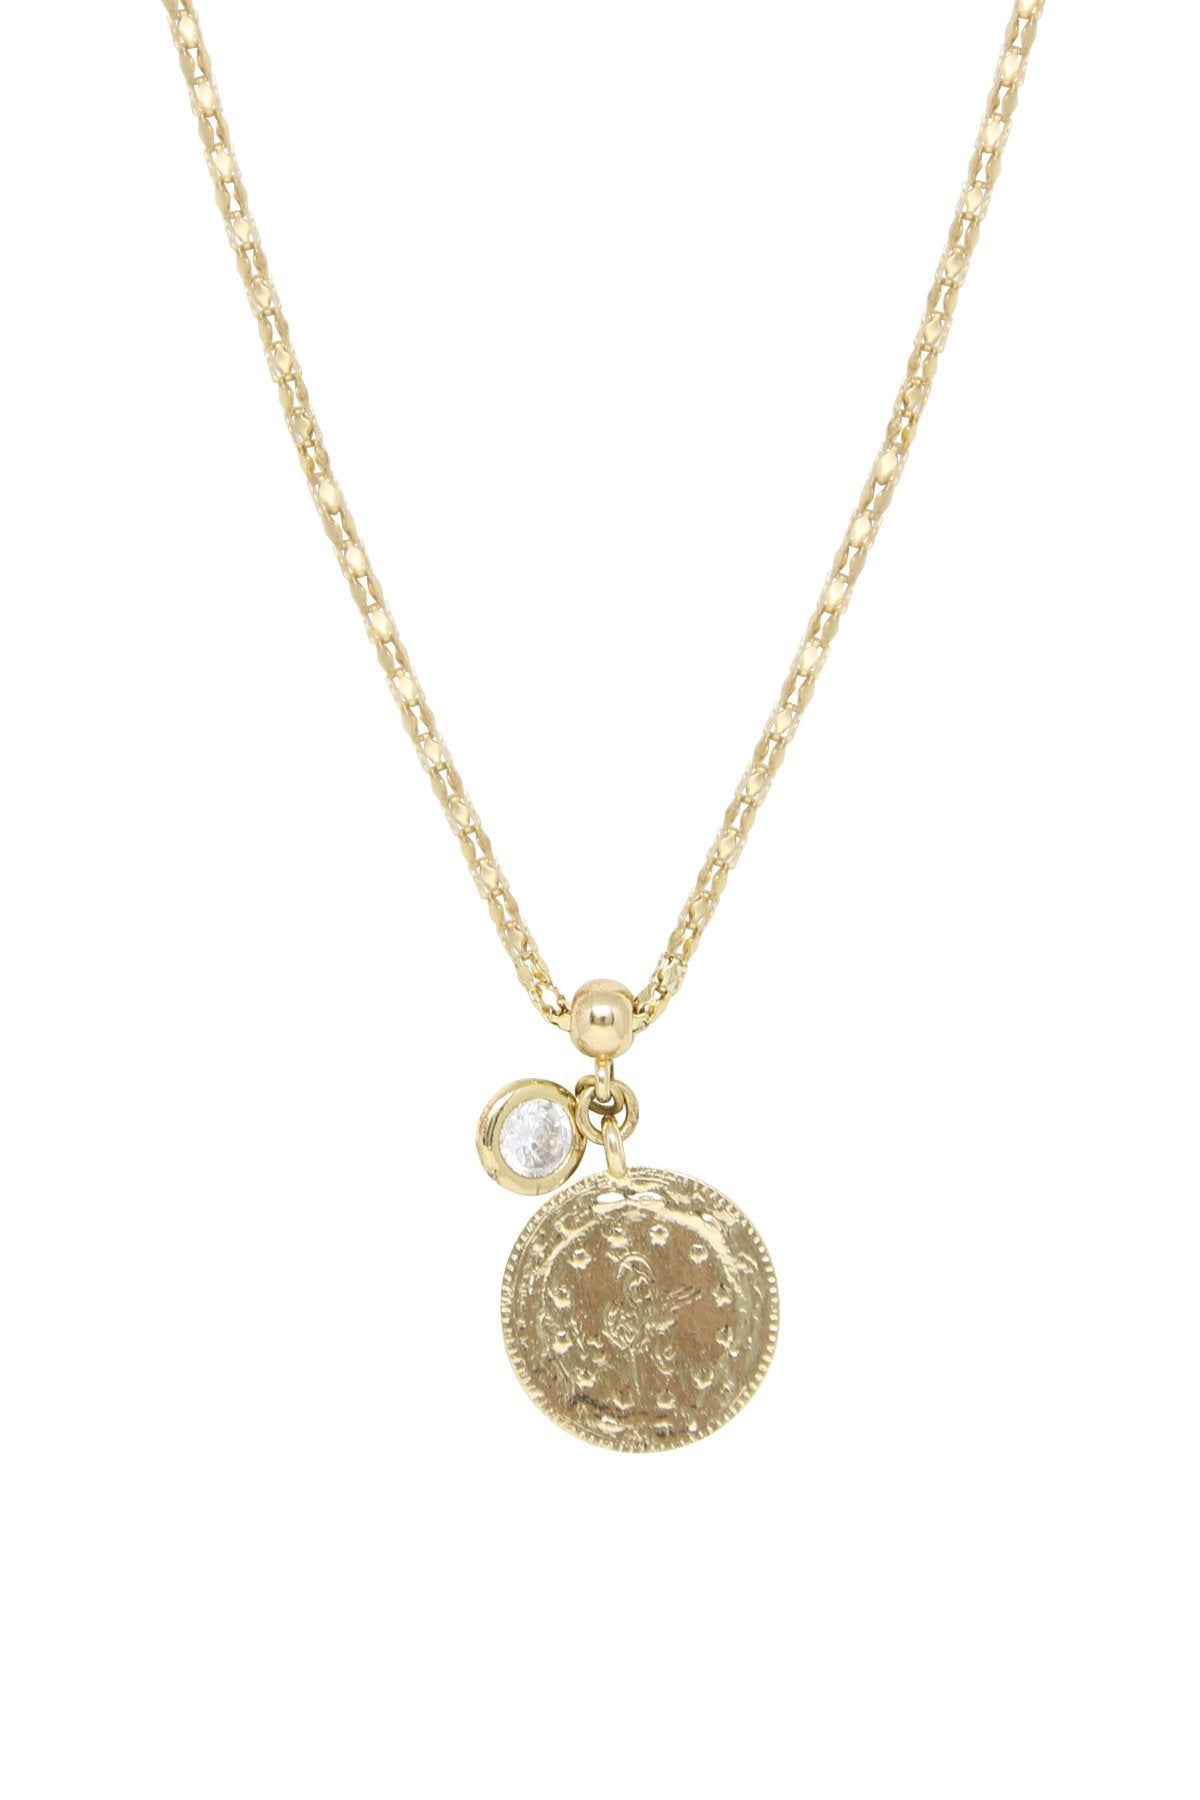 Coin Keepsake 18k Gold Plated Necklace - Marly Rae